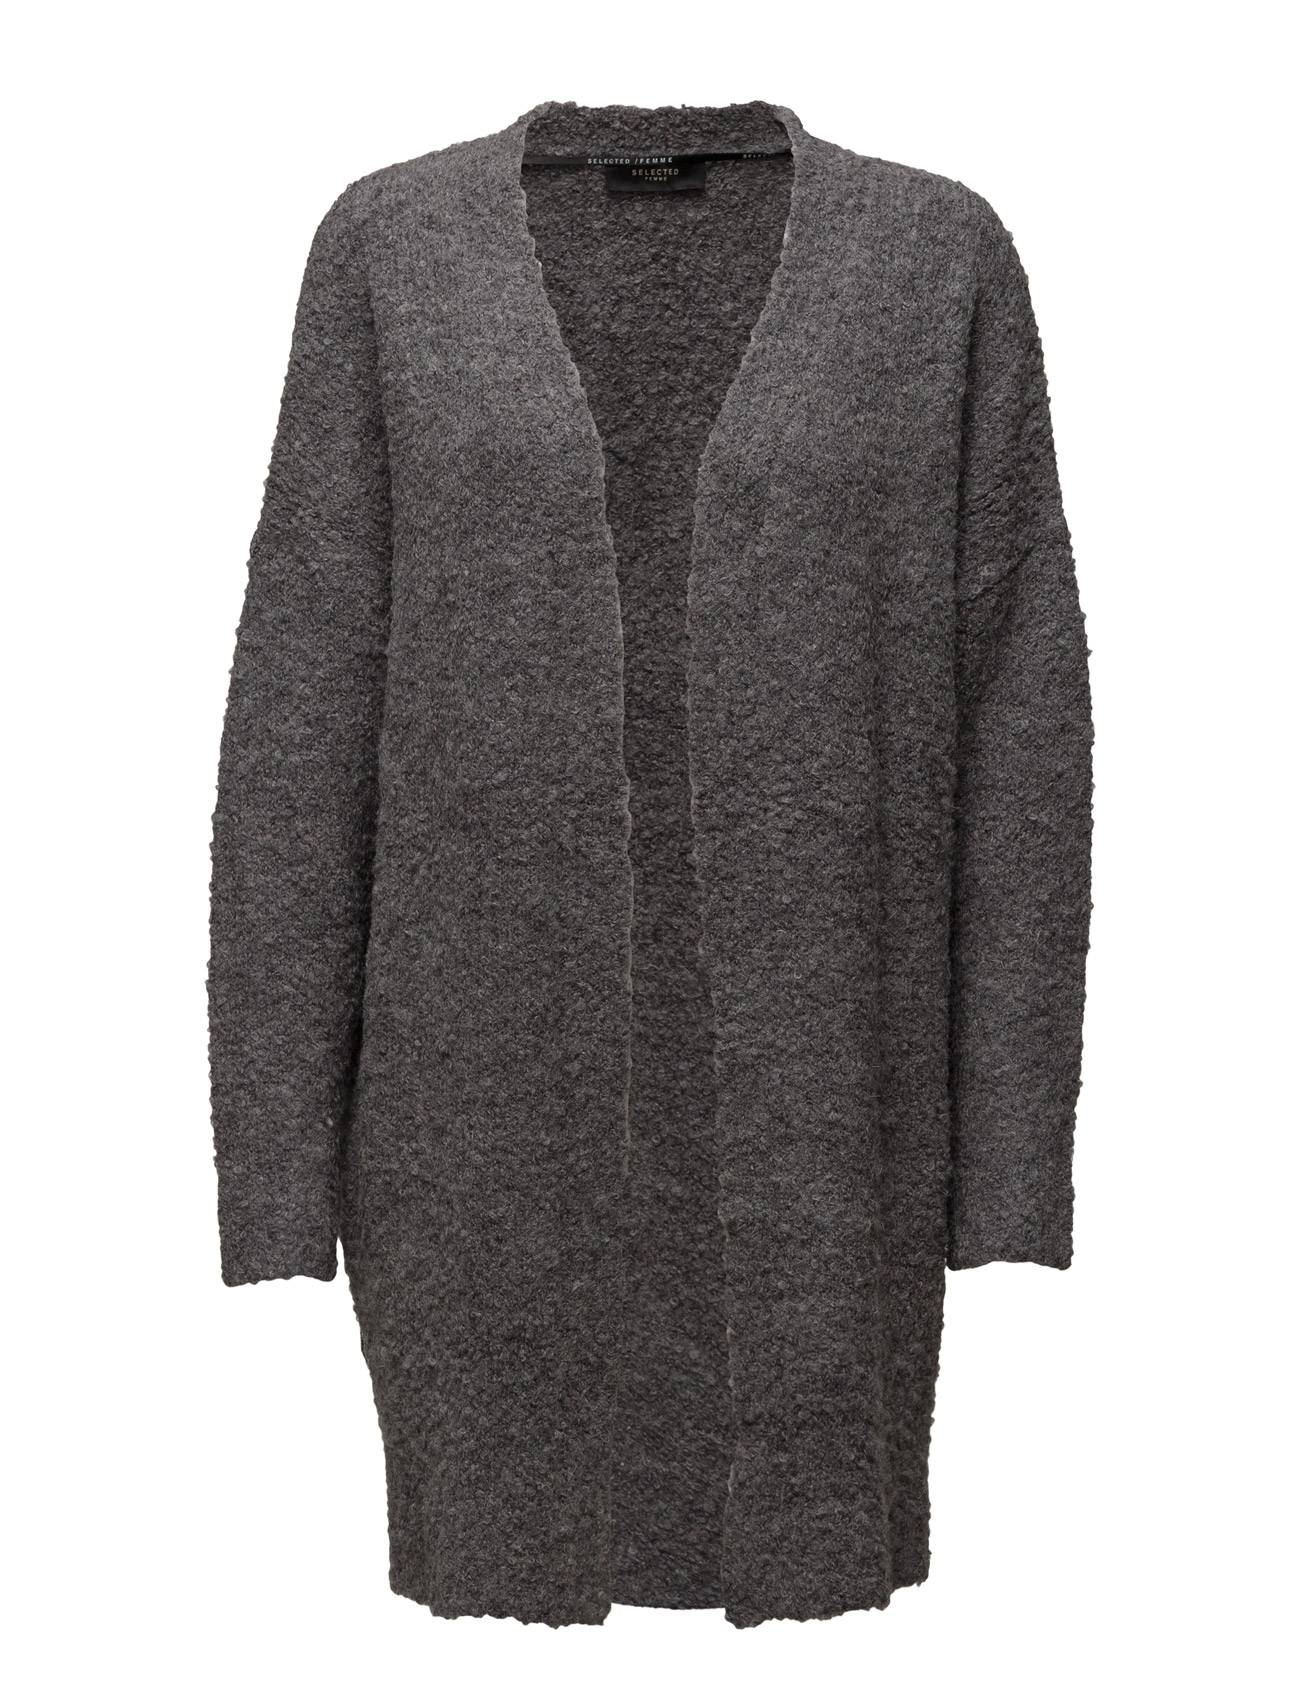 Selected Femme Sfcellie Ls Knit Cardigan